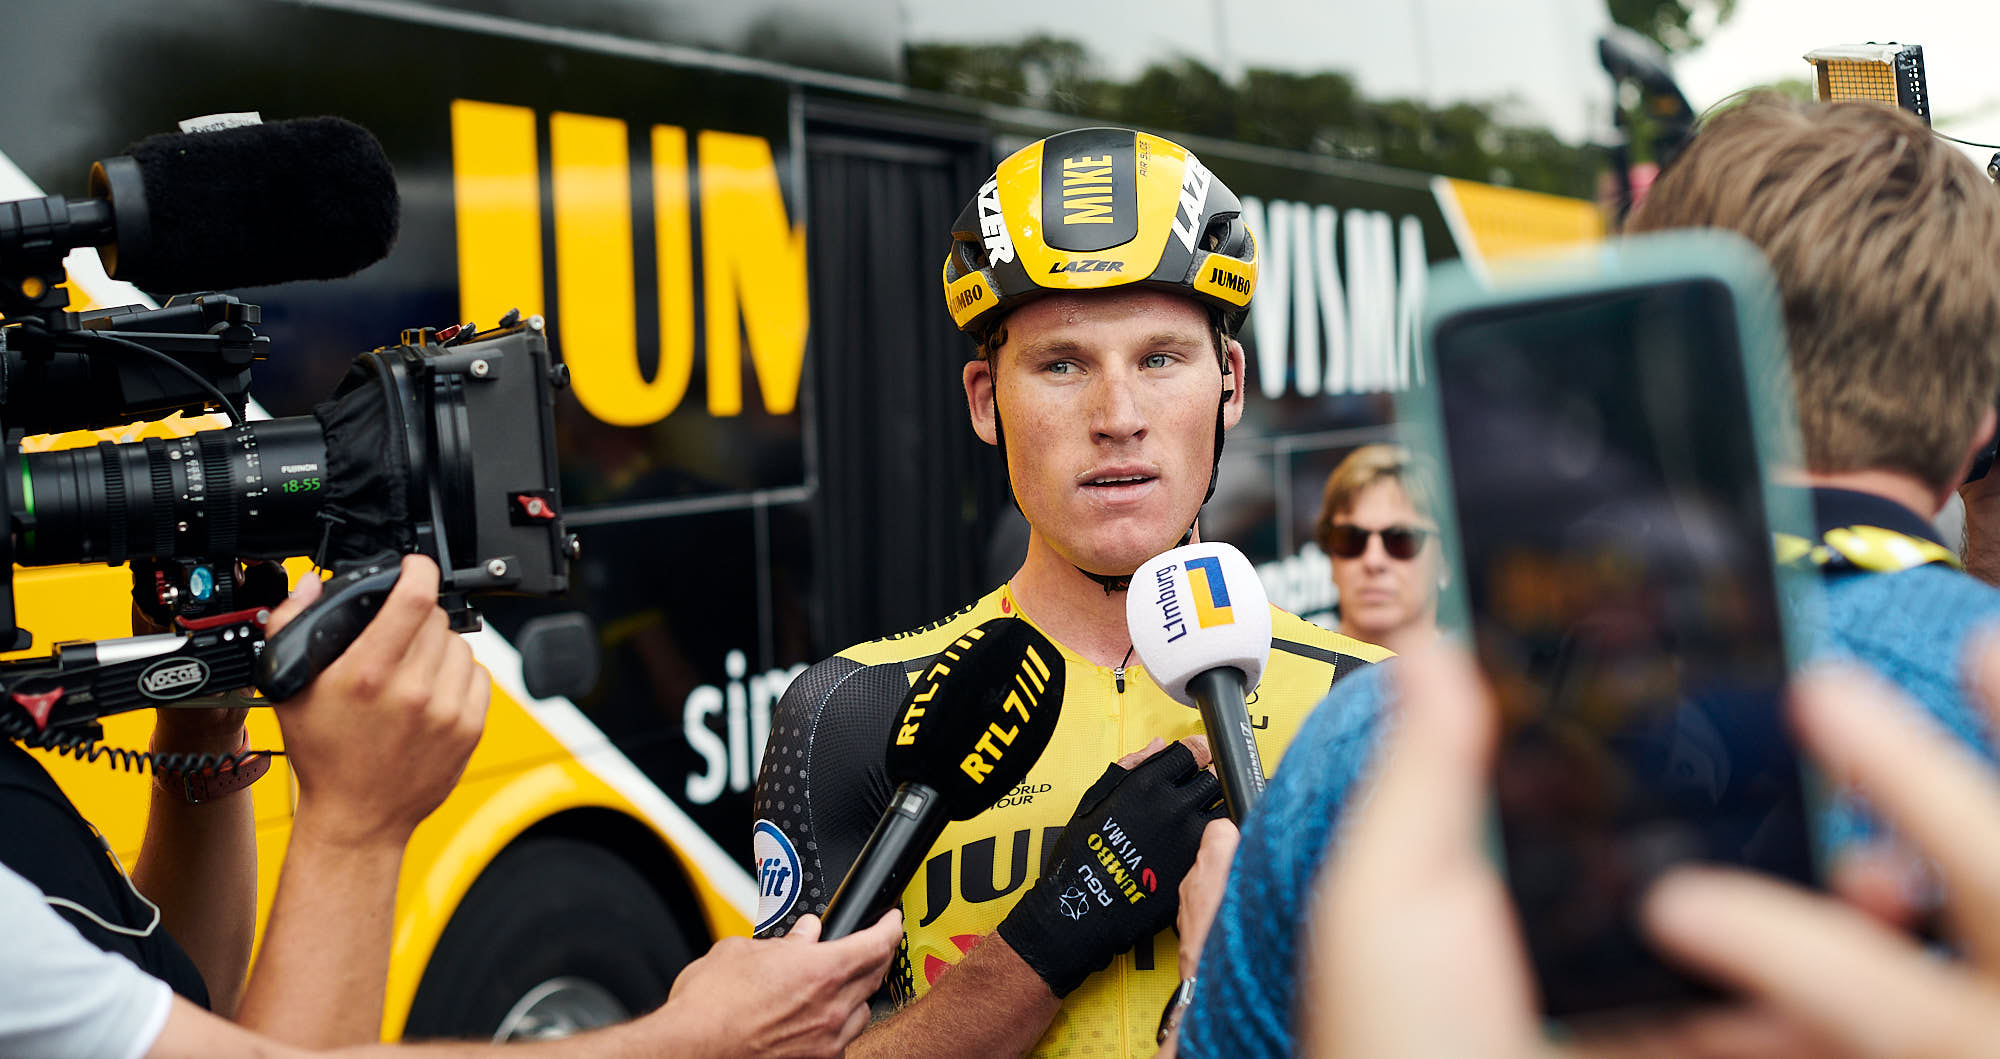 Mike Teunissen at the Jumbo-Visma bus before learning he won the first 2019 Tour de France stage